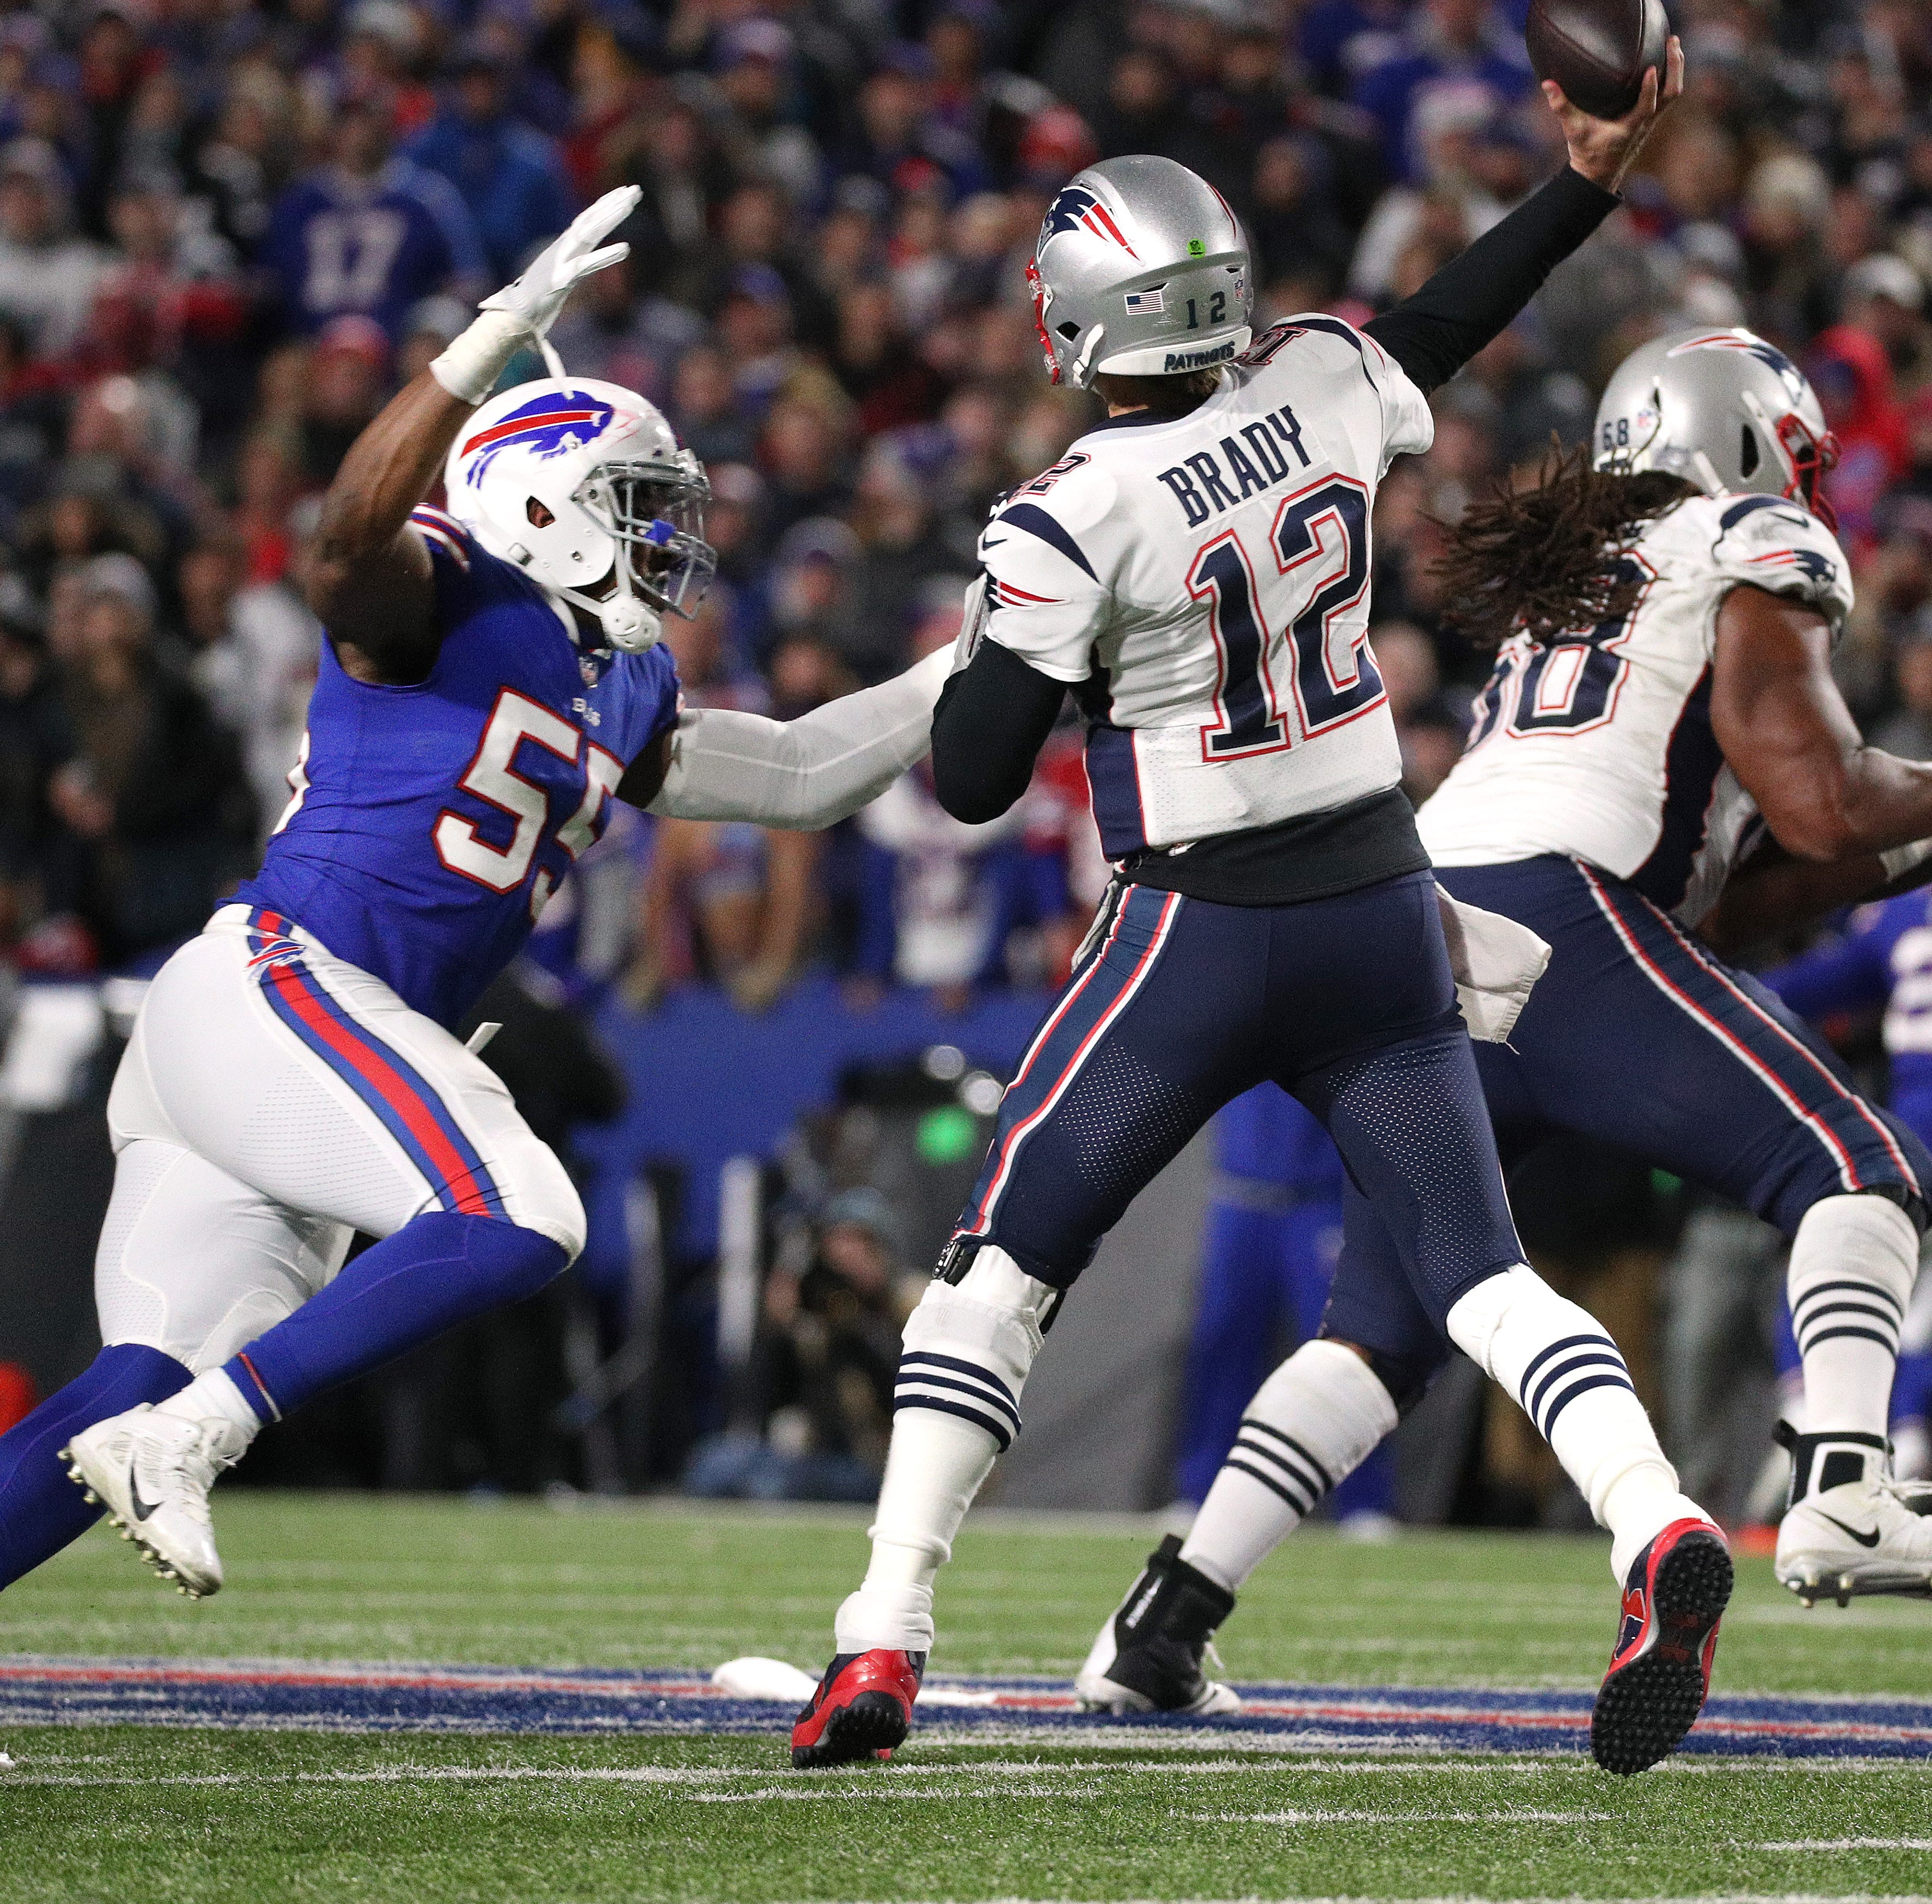 Tom Brady and New England Patriots won't be taking it easy on the Buffalo Bills on Sunday